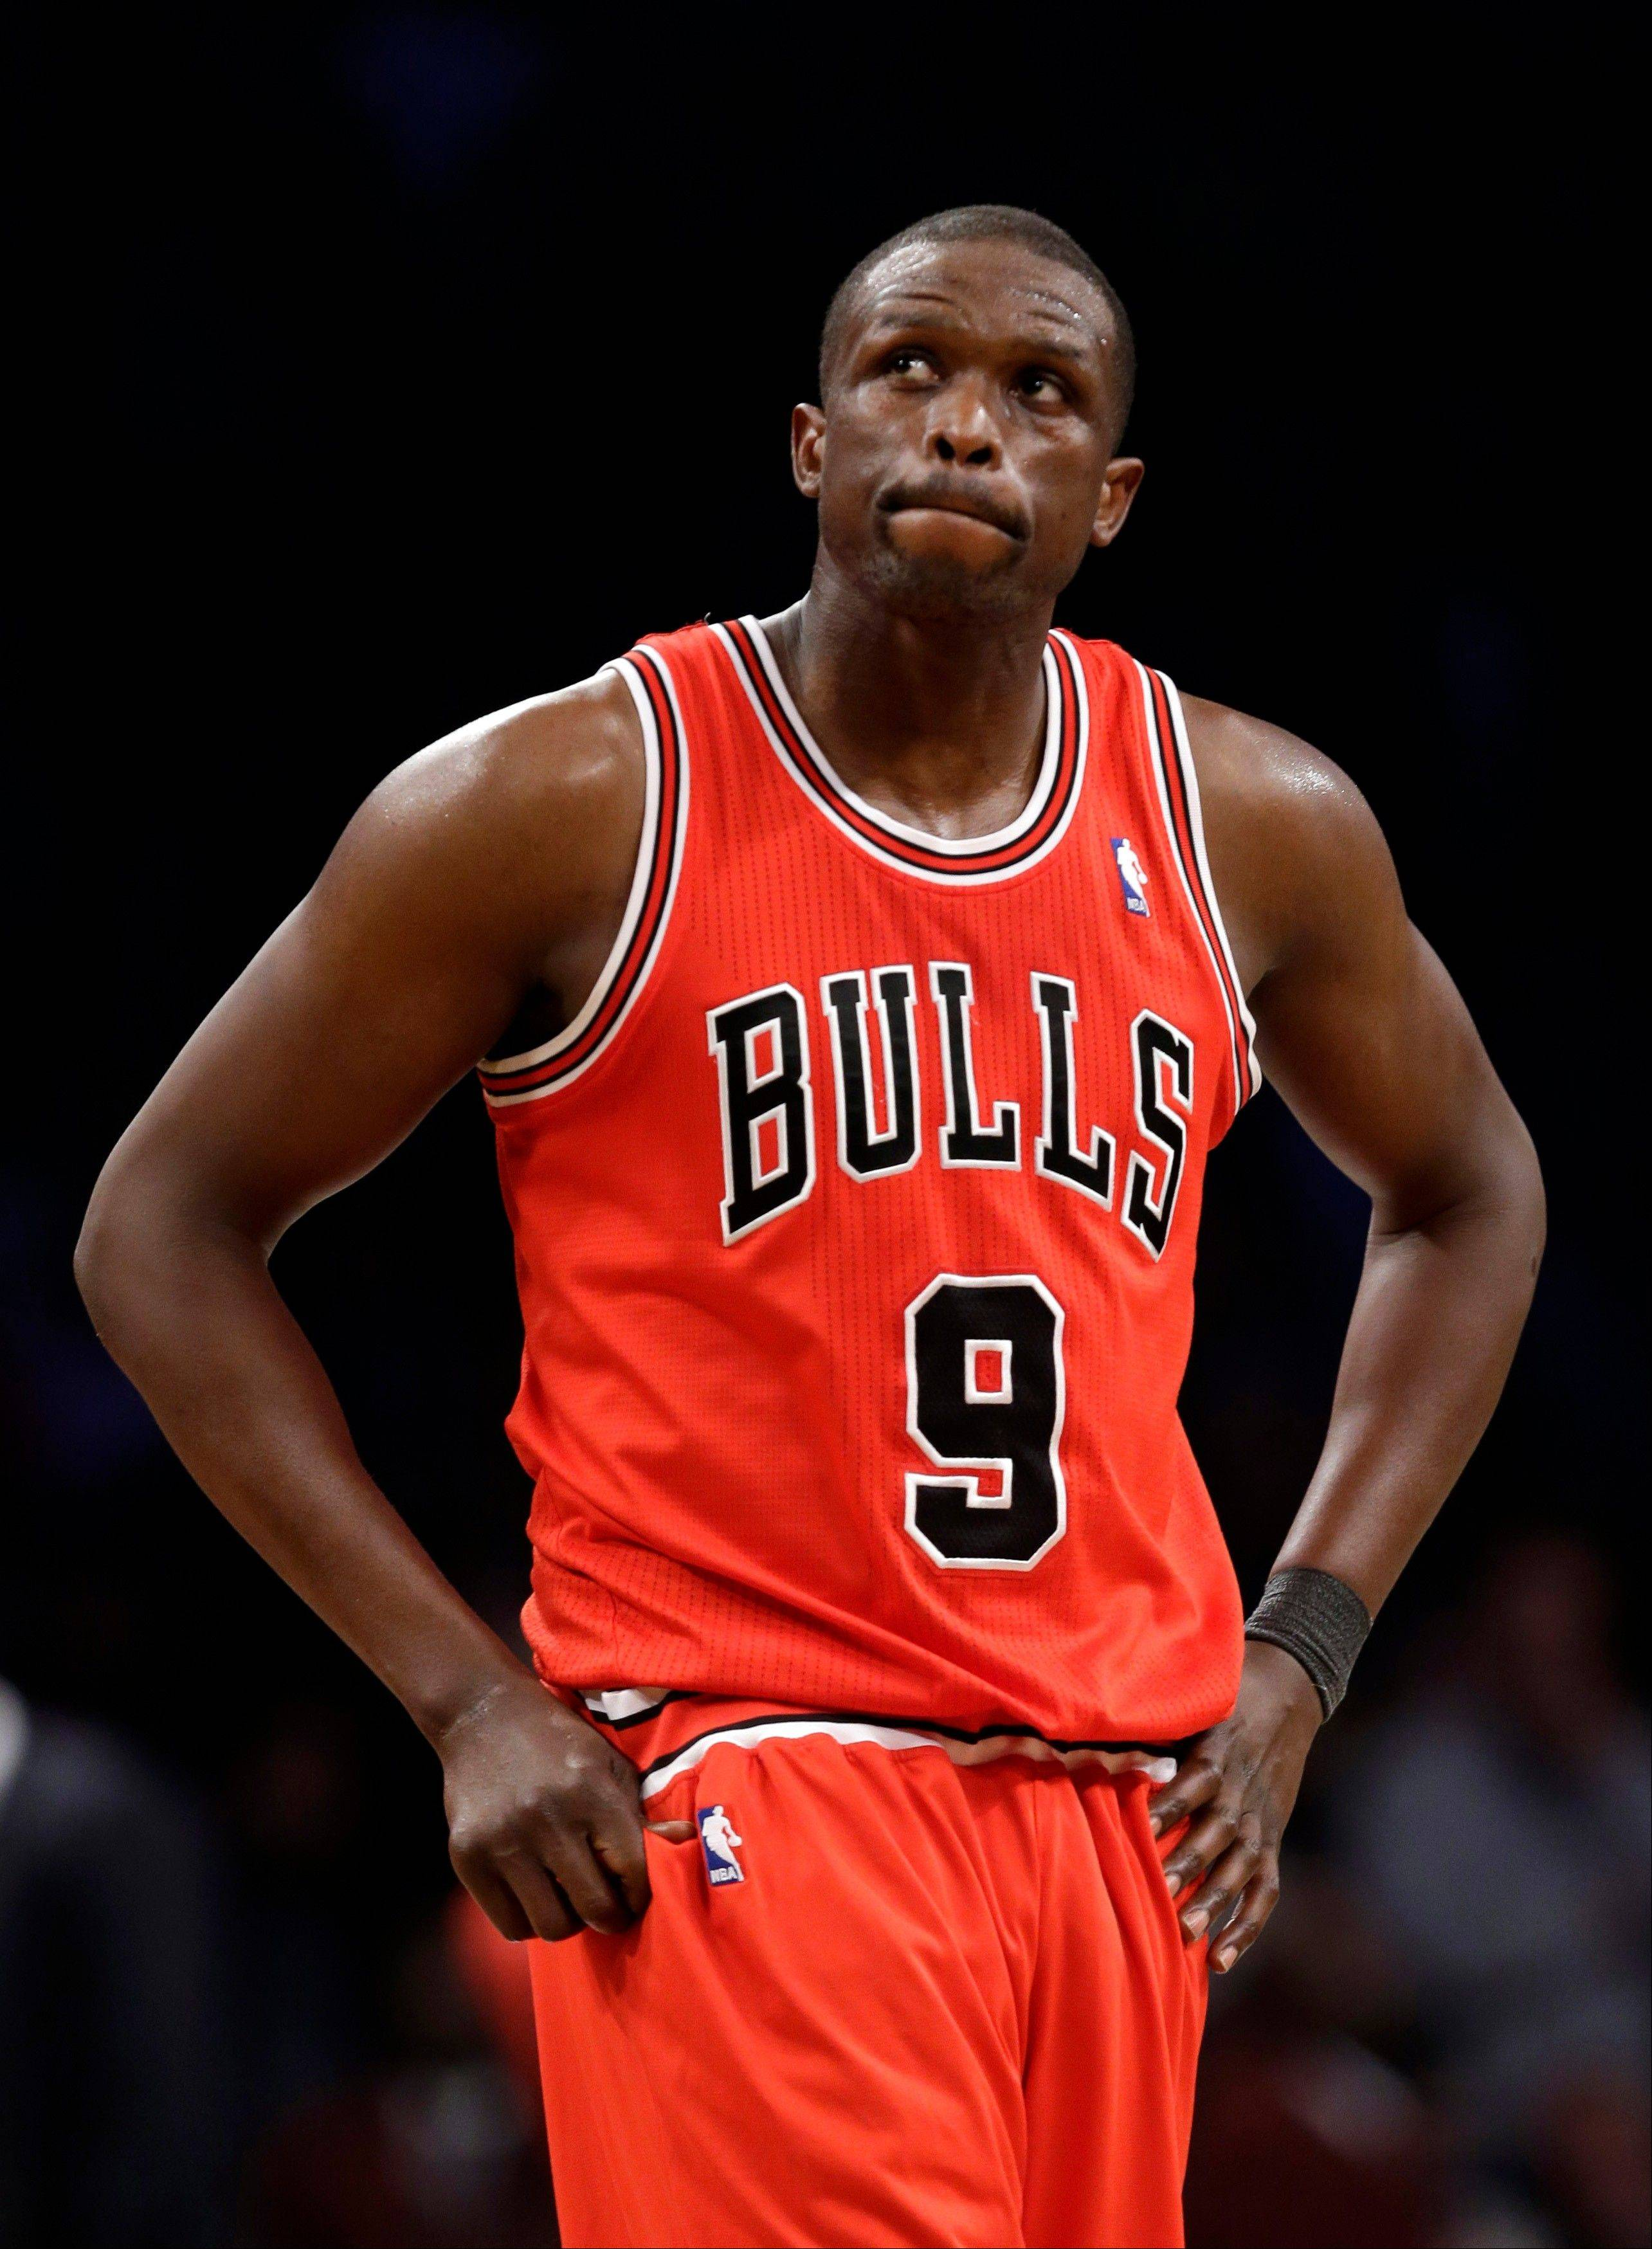 Luol Deng updated his health status via Twitter, confirming that he had underwent a spinal tap Thursday to rule out viral meningitis and did not fly with the Bulls to New York on Friday. Deng hopes to receive medical clearance to play in today's Game 7 at Brooklyn.